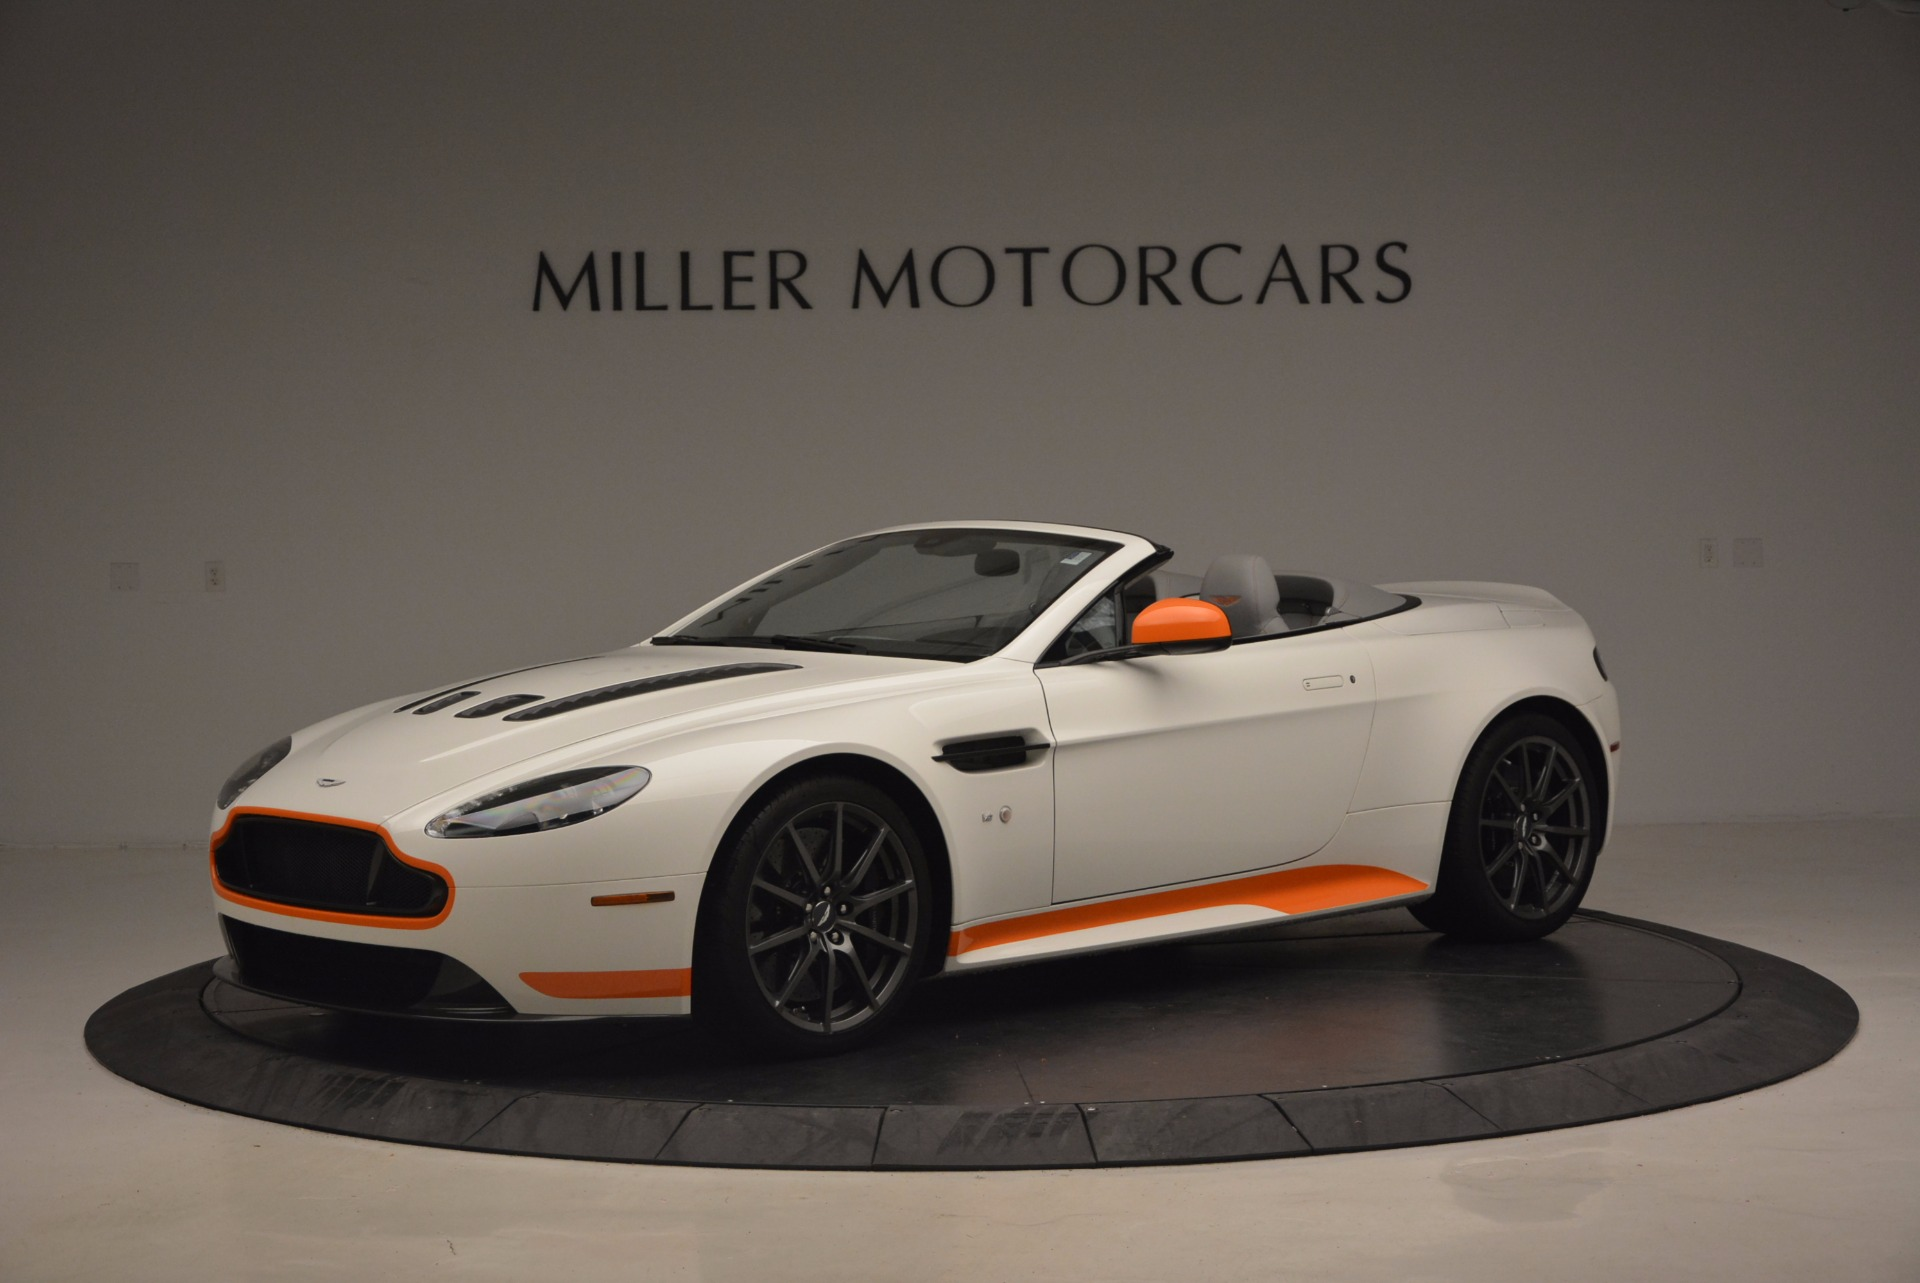 Used 2017 Aston Martin V12 Vantage S Convertible for sale Sold at Pagani of Greenwich in Greenwich CT 06830 1